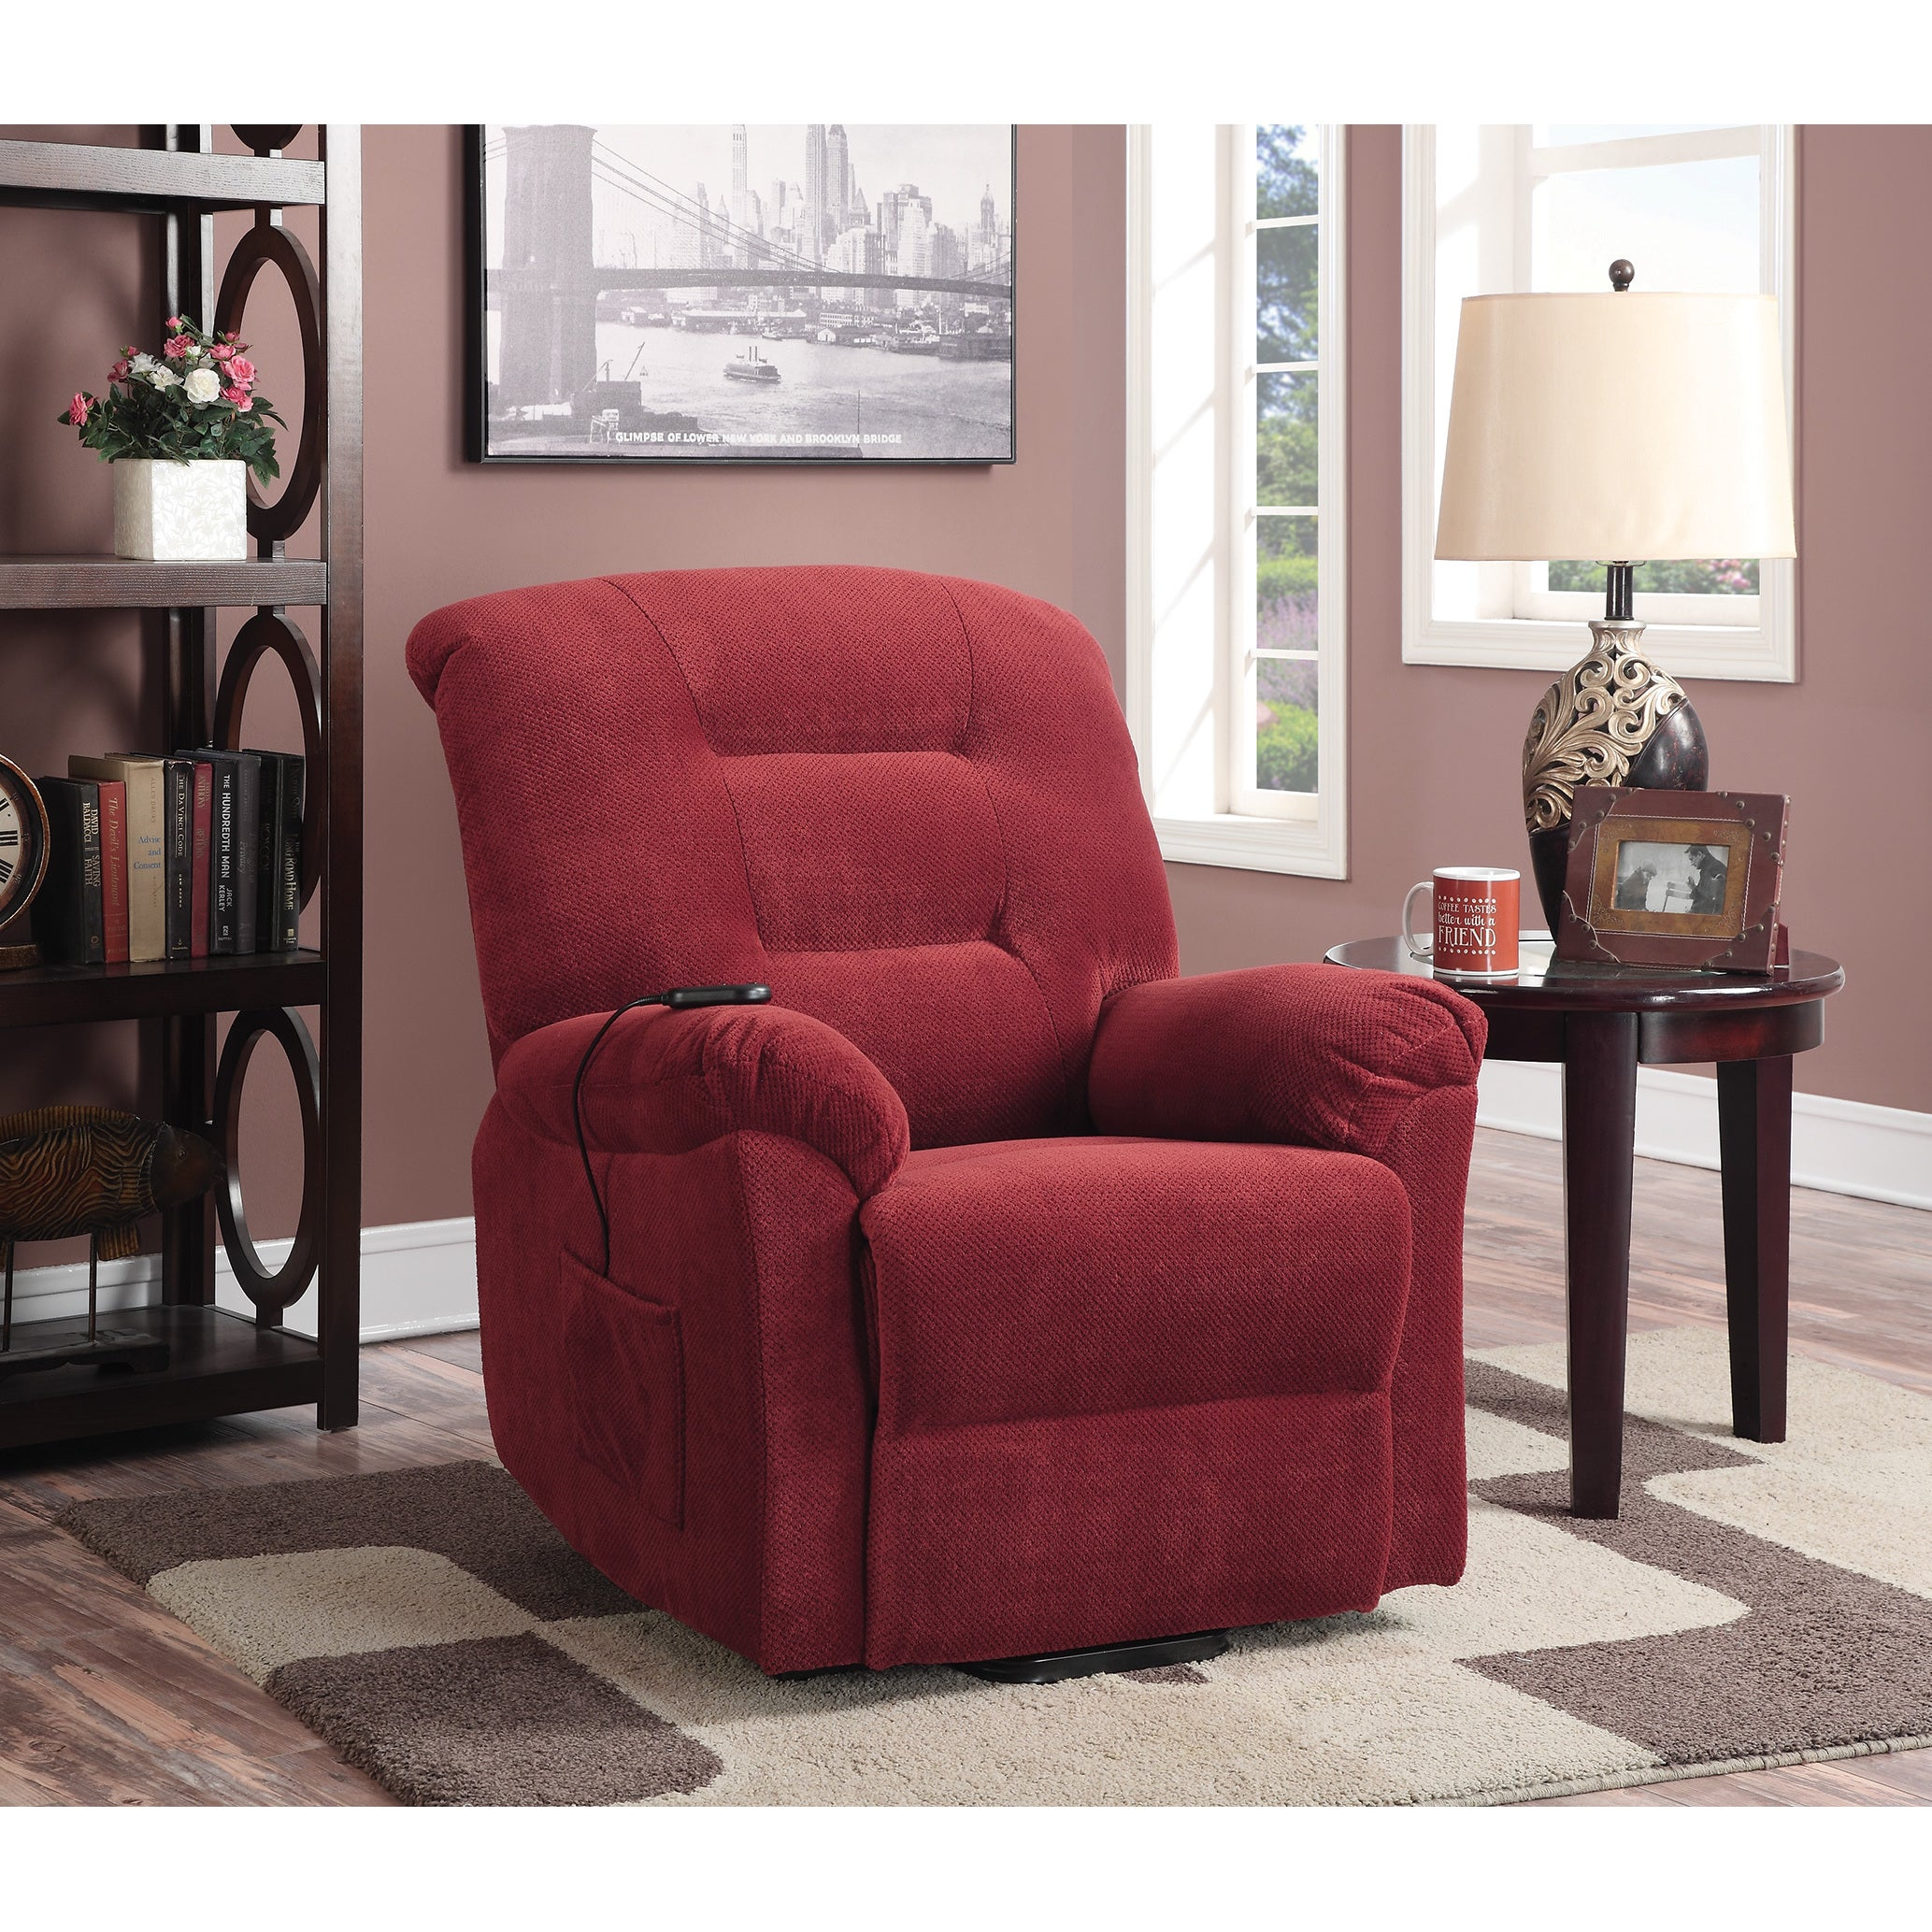 Coaster Furniture Red Power Lift Fabric Recliner (Brick R...